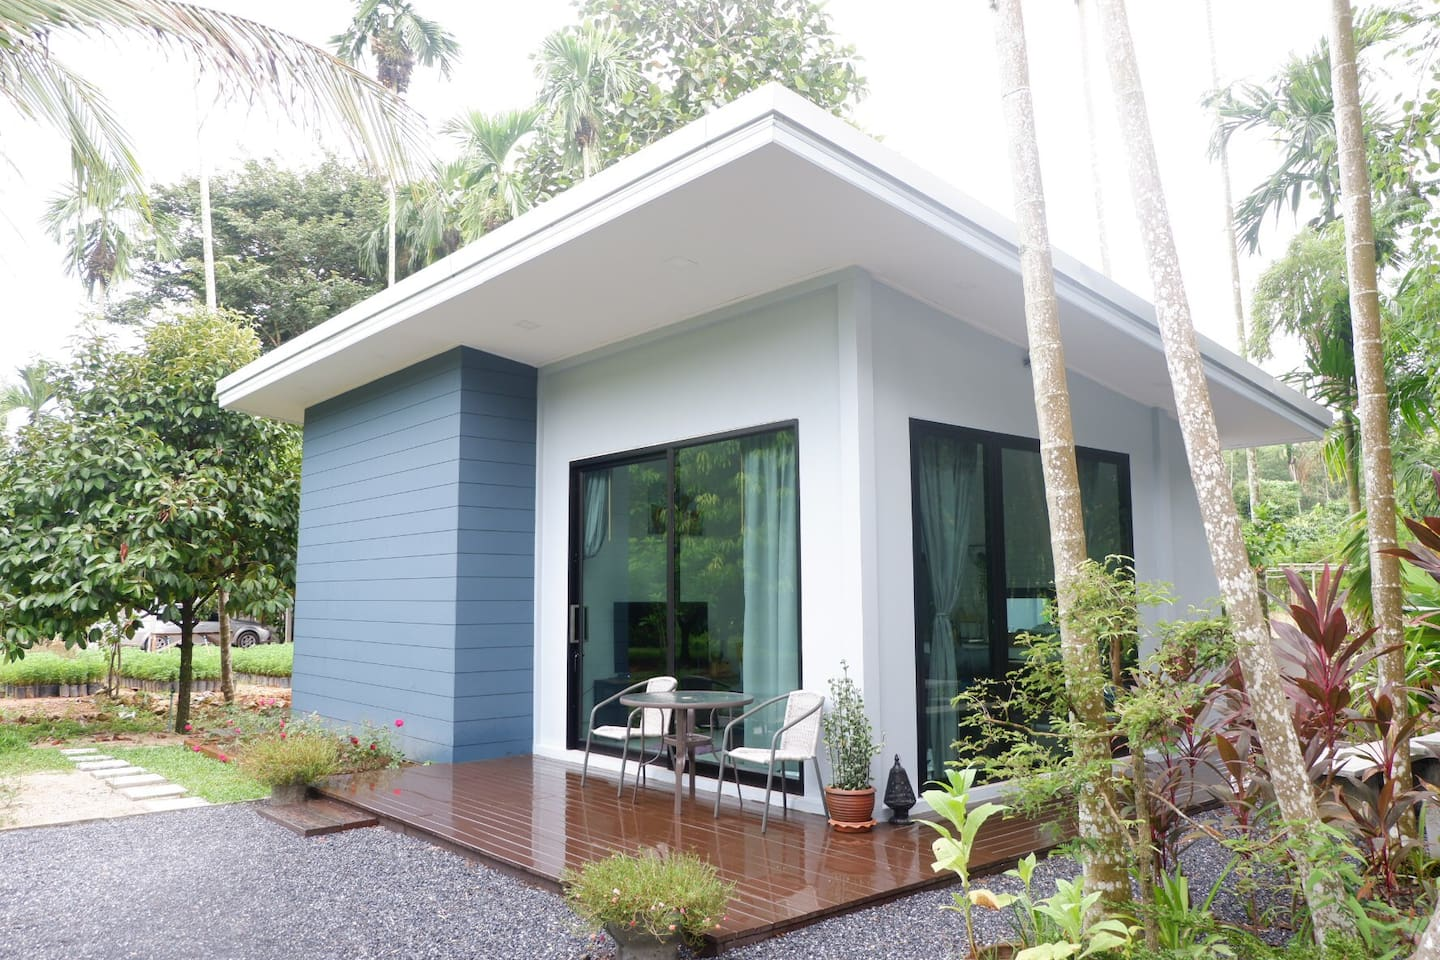 Homestay surrounded by green trees